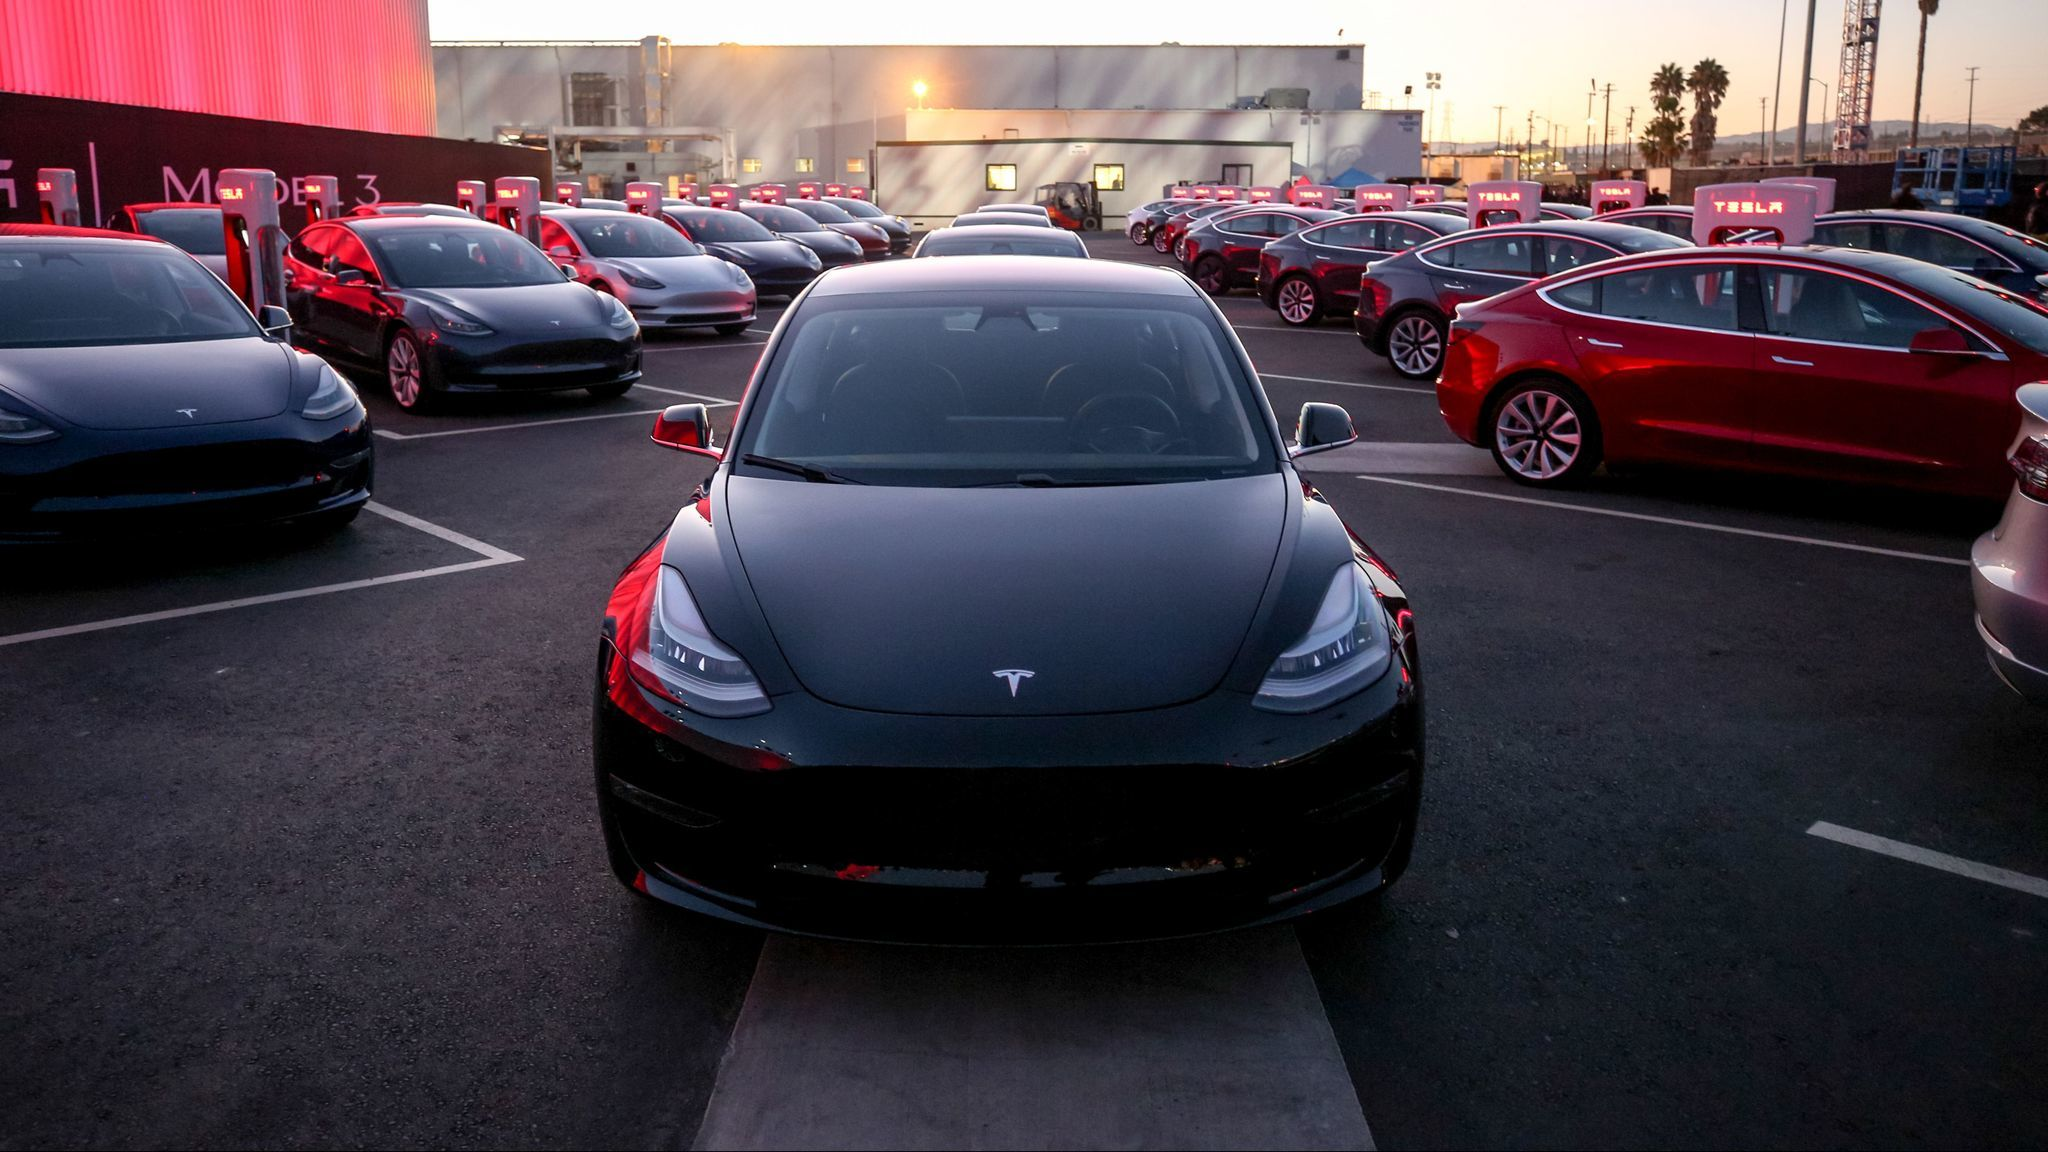 The 35 000 base price of tesla s model 3 car could drop by more than 16 000 if